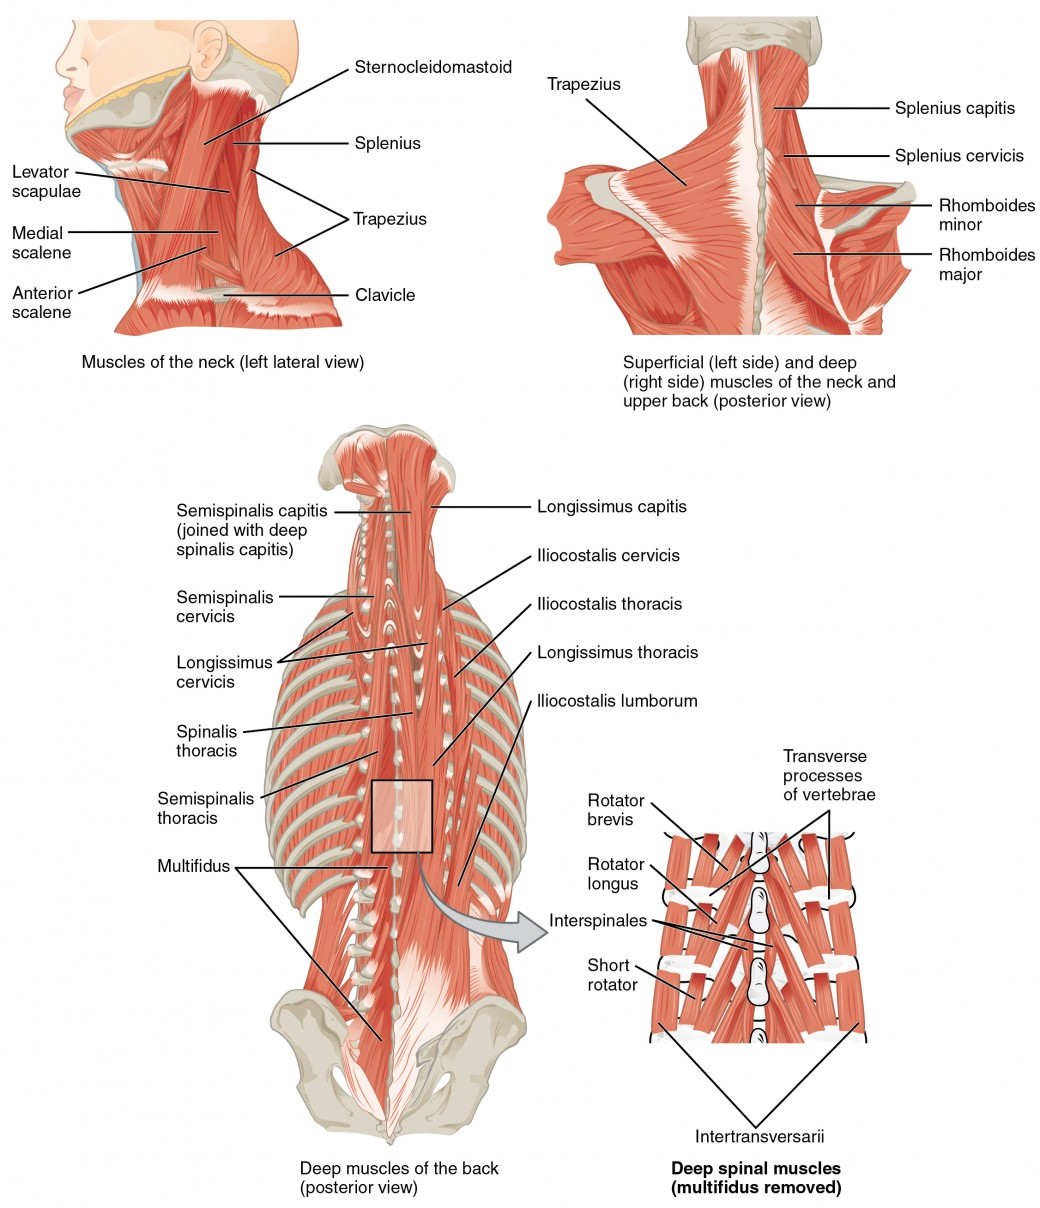 Axial Muscles of the Head, Neck, and Back | Anatomy and Physiology I